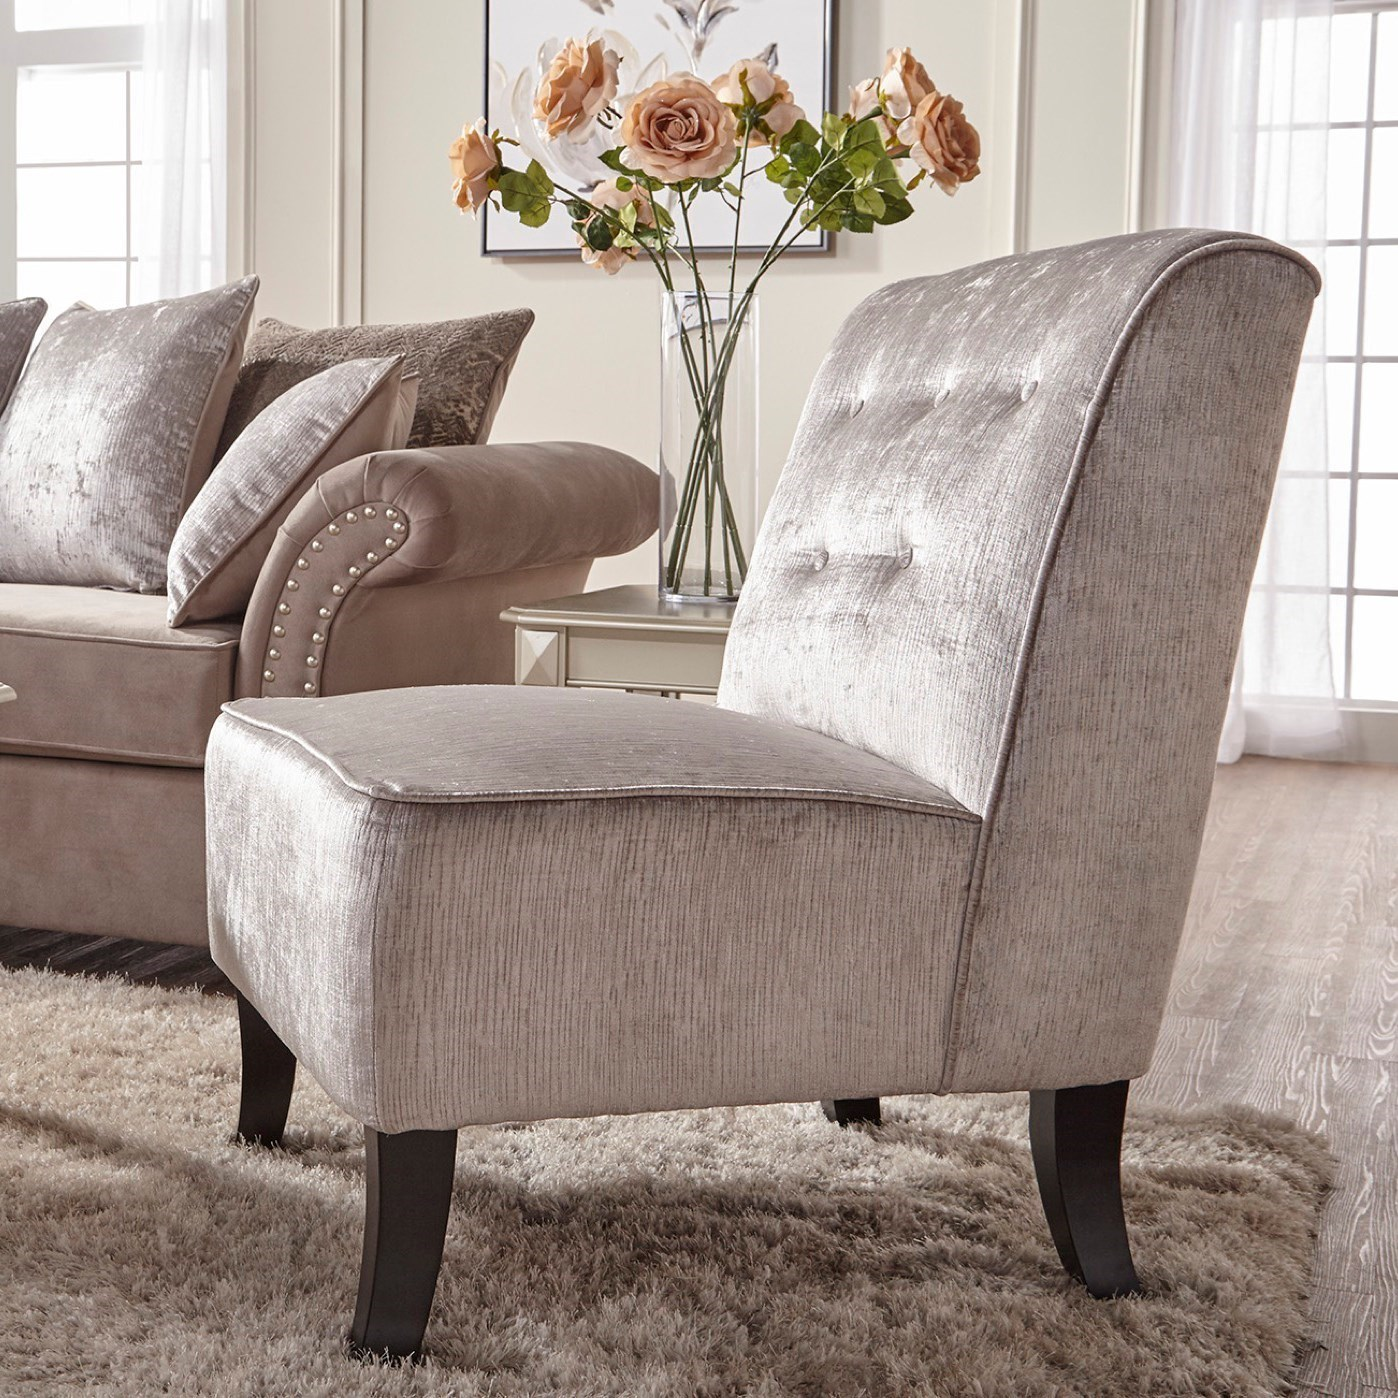 Serta Upholstery By Hughes Furniture 7500Upholstered Accent Chair ...